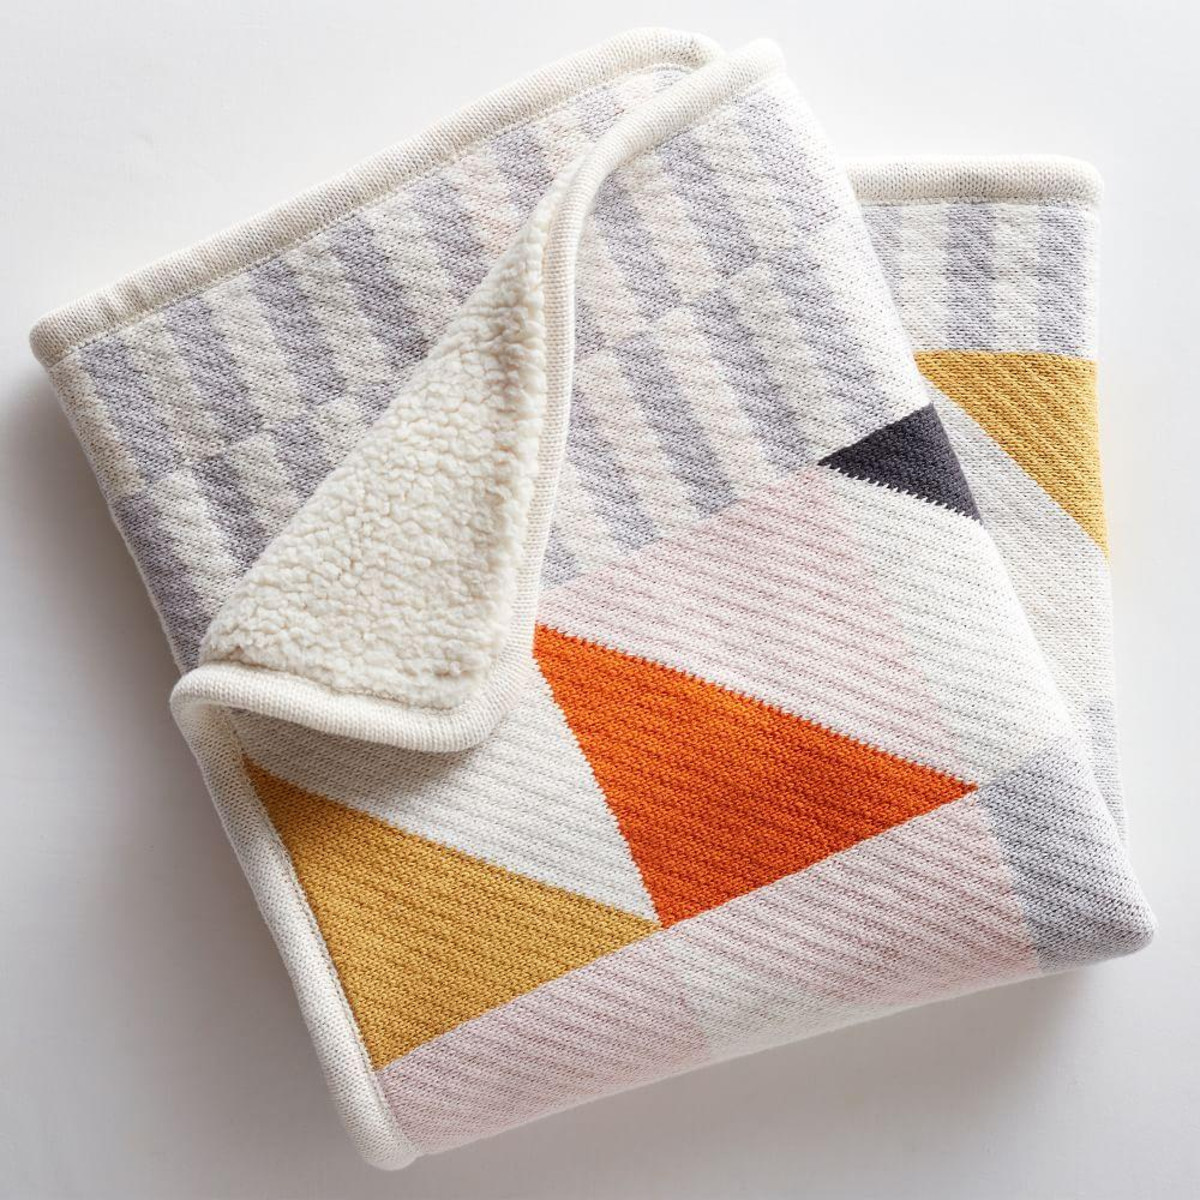 New Knit Cotton Baby Blanket Squares Cotton Knit Baby Blanket Of Awesome 41 Models Cotton Knit Baby Blanket